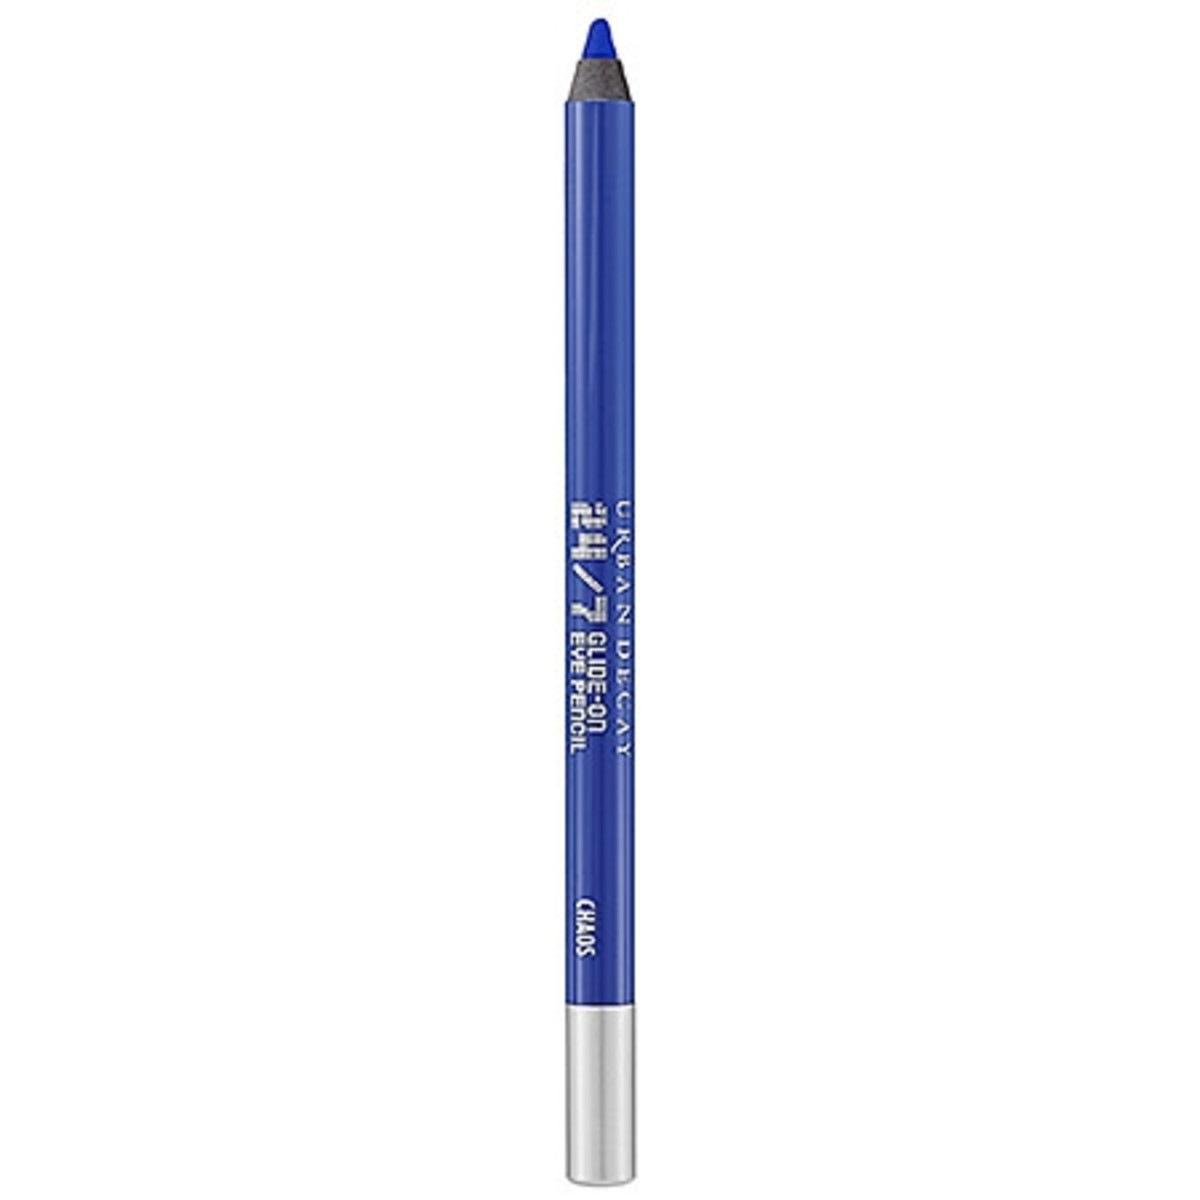 Urban Decay 24/7 Glide-On Eye Pencil in Chaos